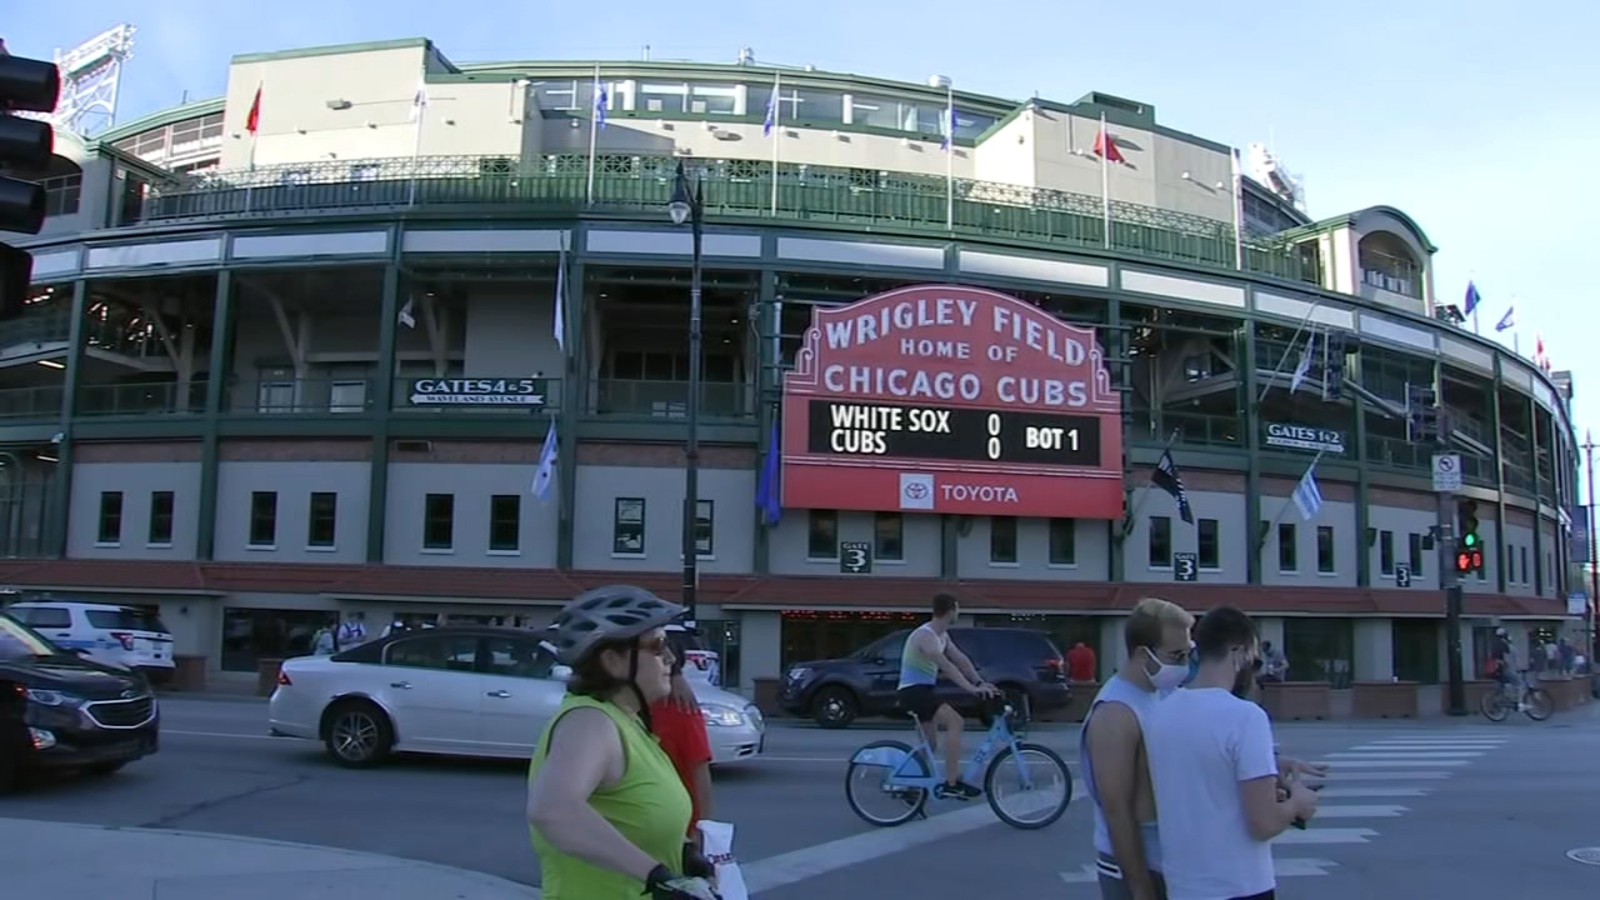 Chicago Cubs, White Sox face off at Wrigley Field in adjusted exhibition  games - ABC7 Chicago